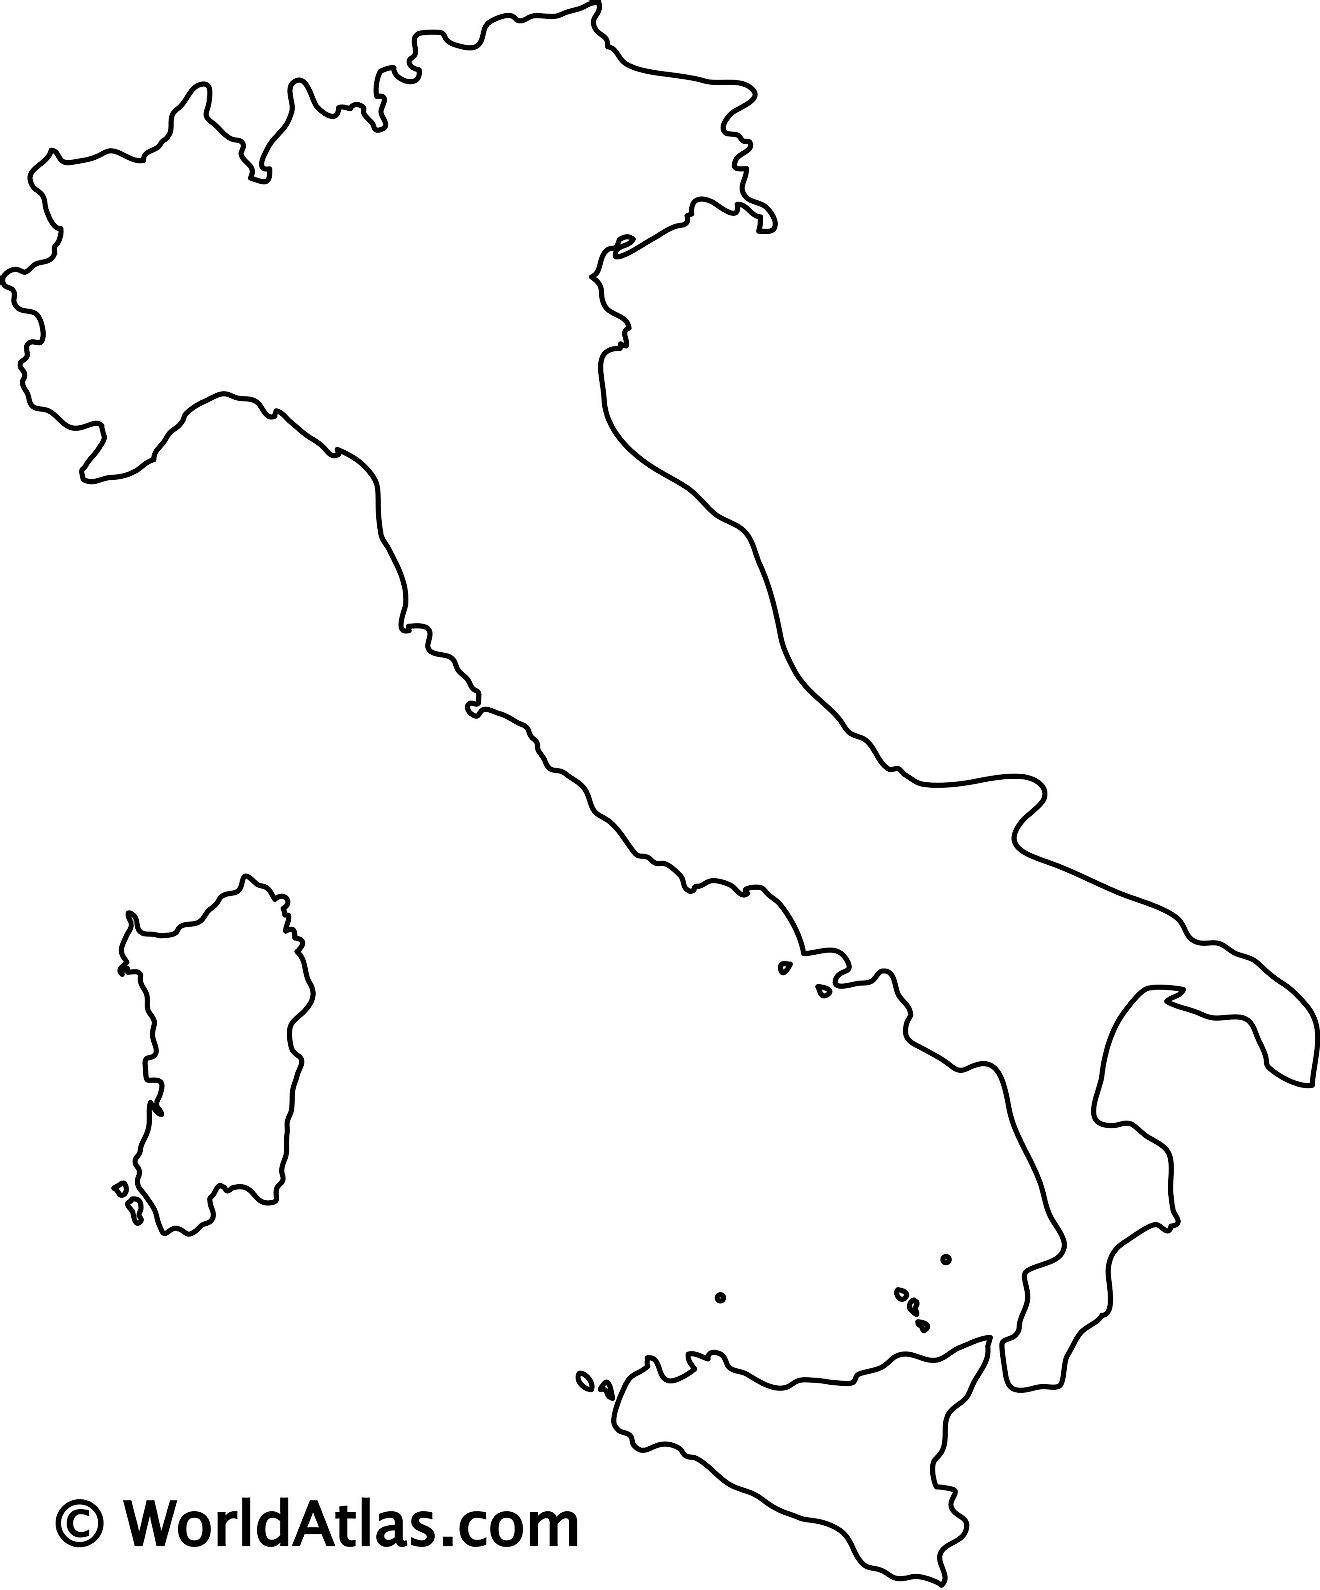 Blank outline map of Italy